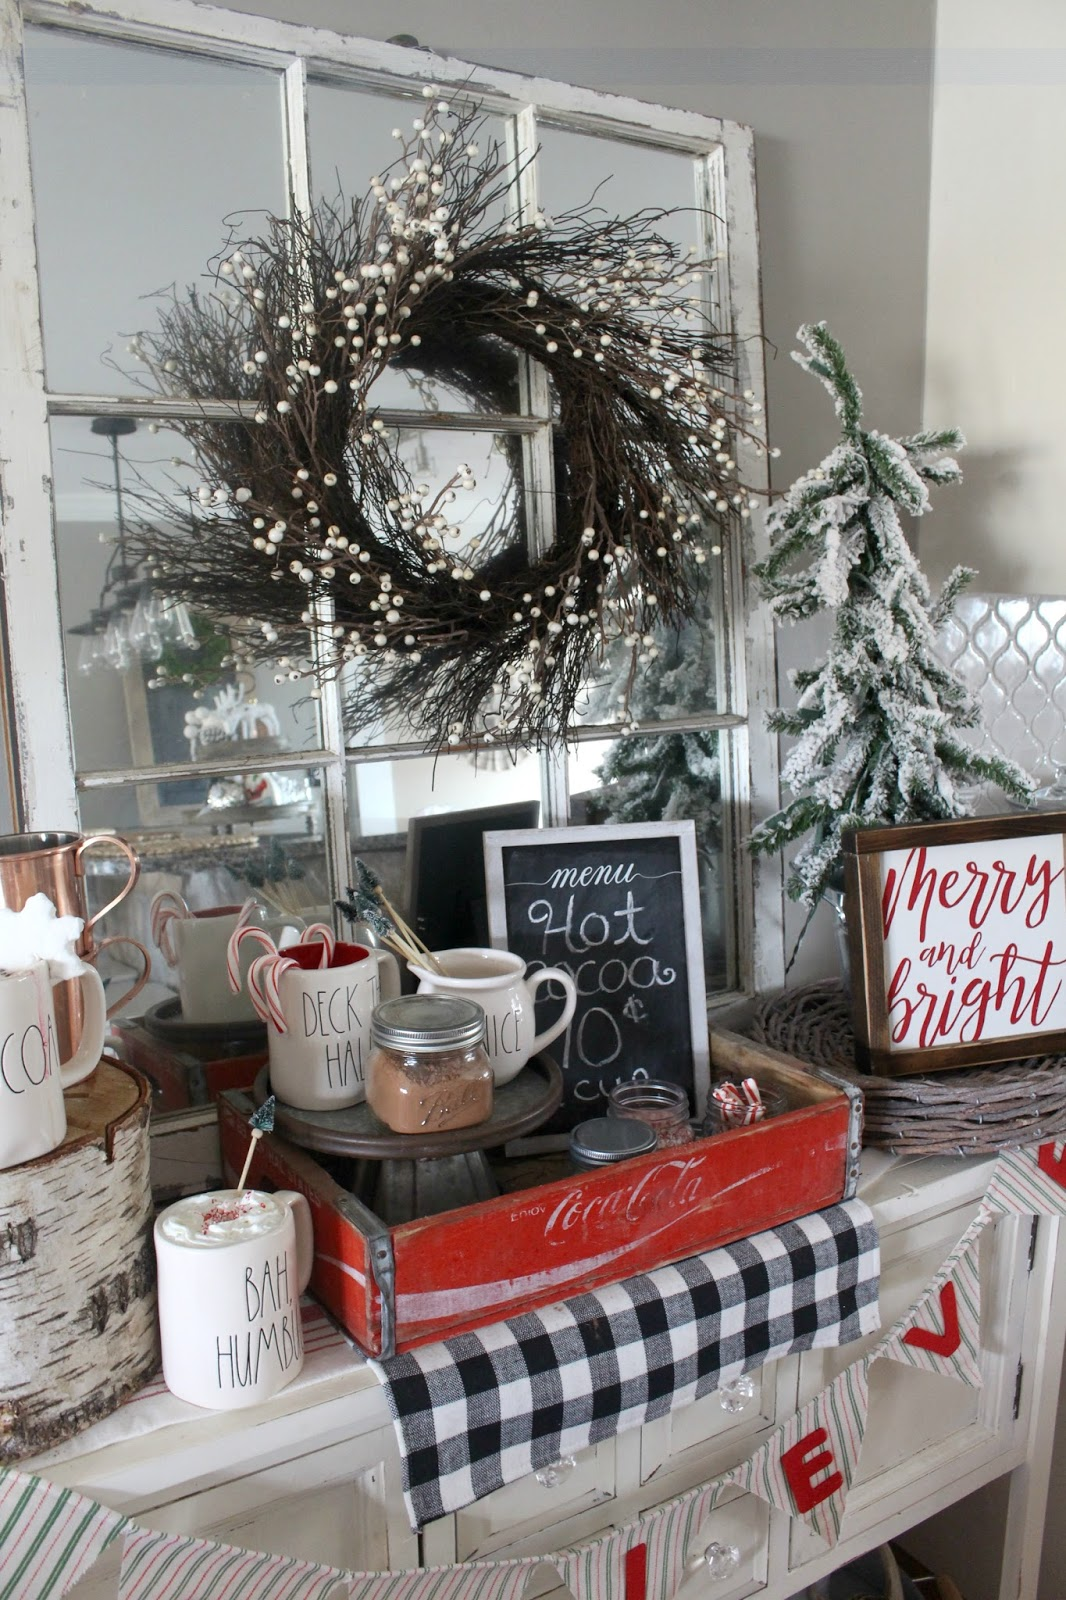 Six Quick Budget Friendly Ways To Decorate For Christmas - The Glam on